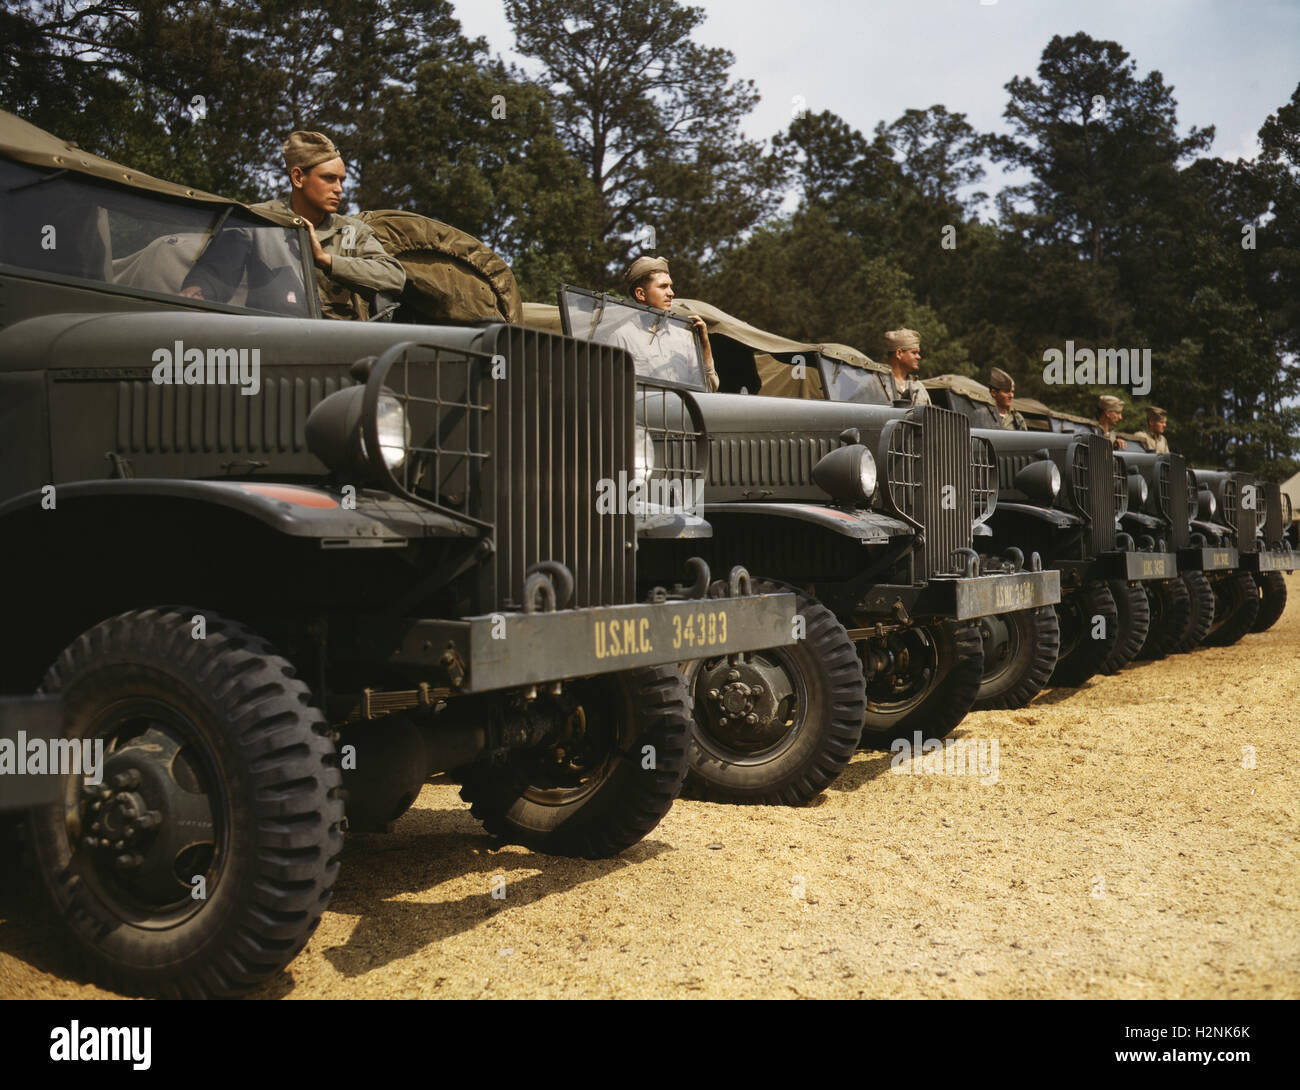 Motor Detachment, Marine Corps Air Station New River, Jacksonville, North Carolina, USA, Alfred T. Palmer for Office - Stock Image